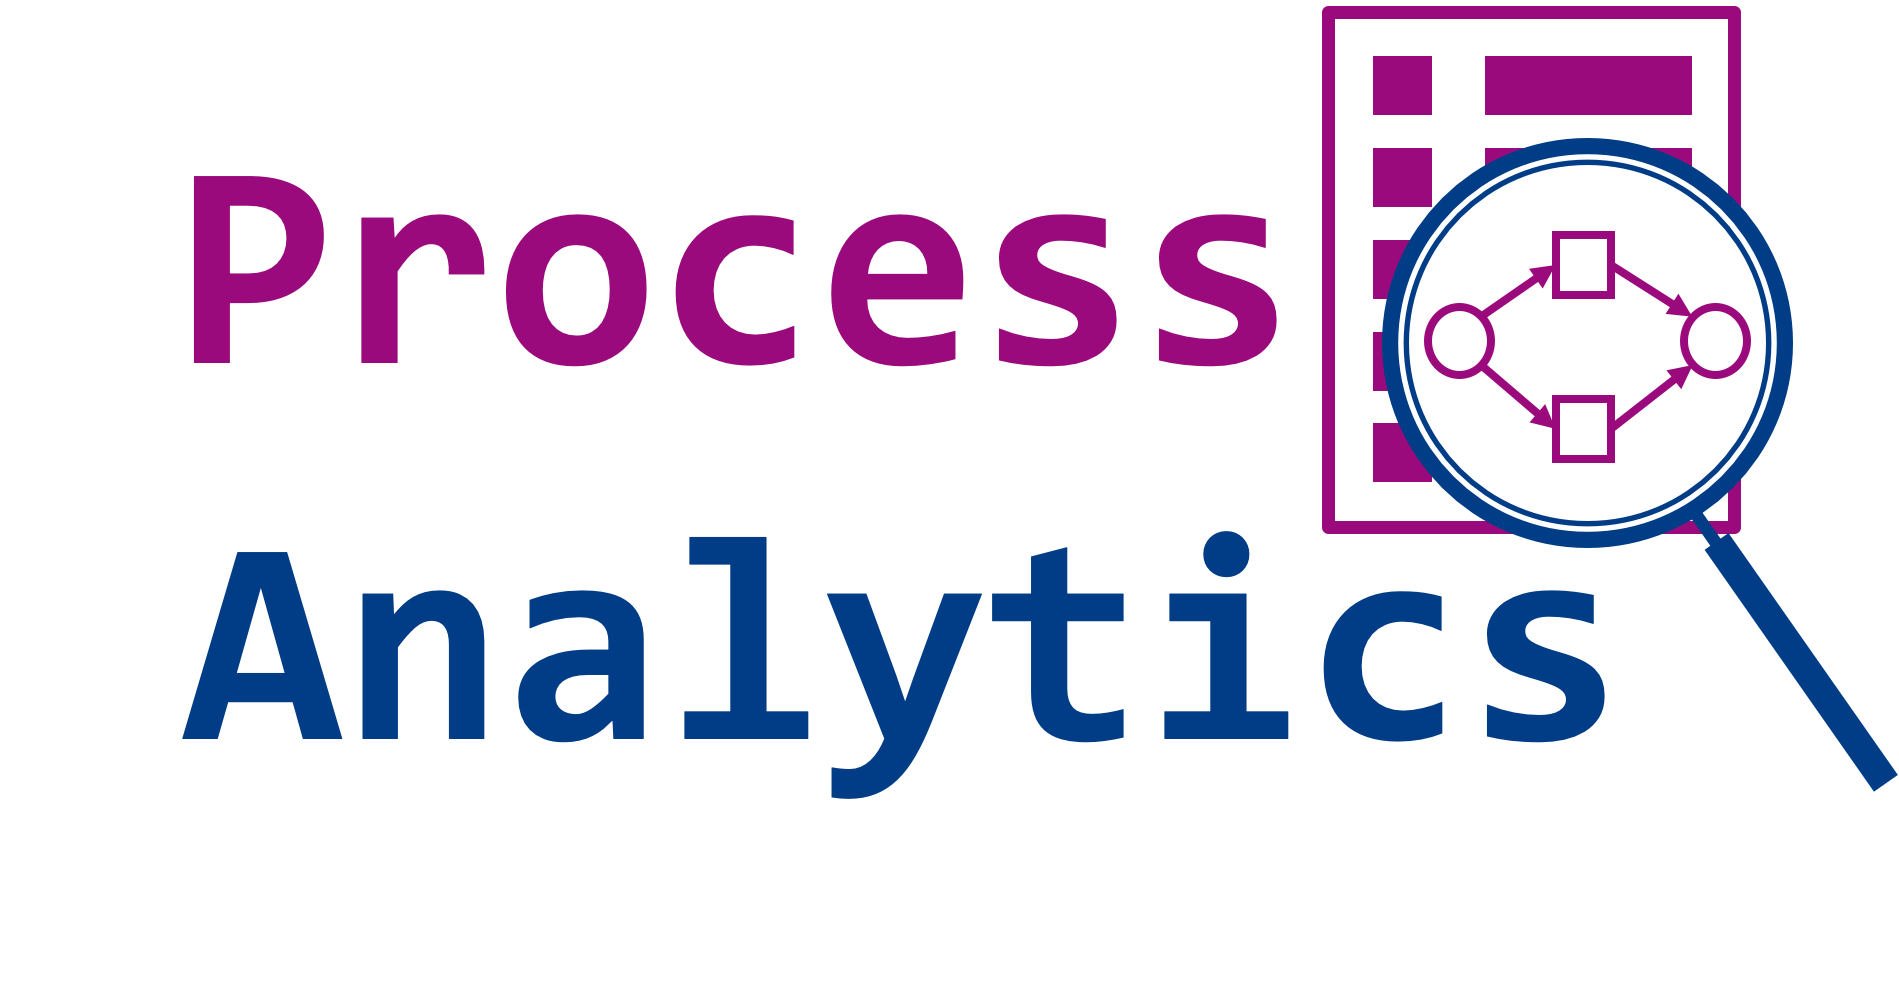 This is the logo of the Process Analytics Group